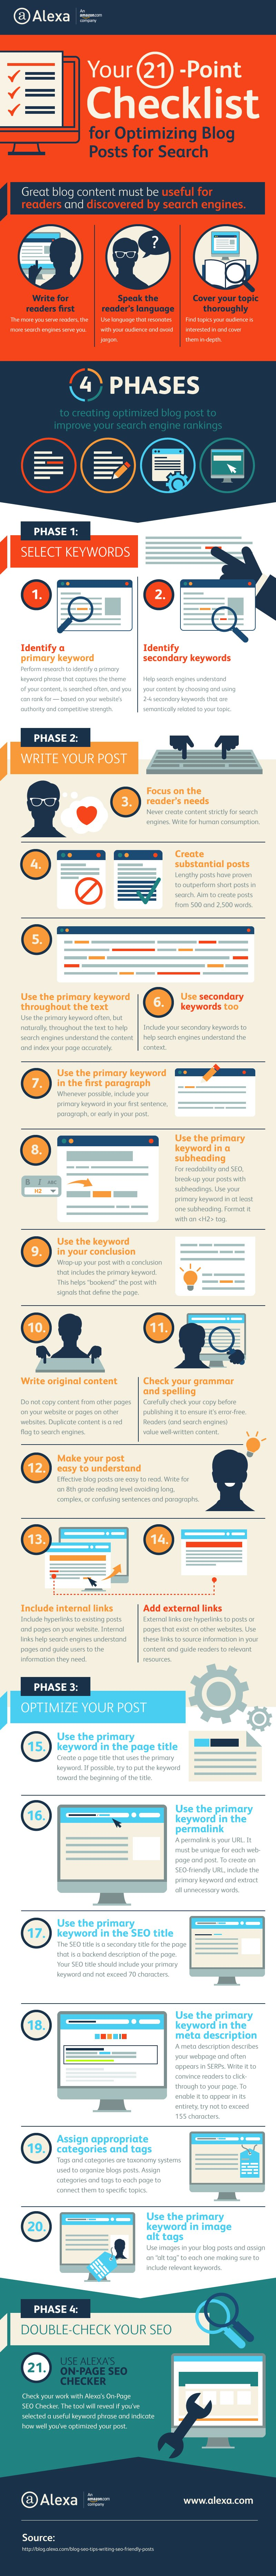 21-Point Checklist for Blog Post Search Optimization